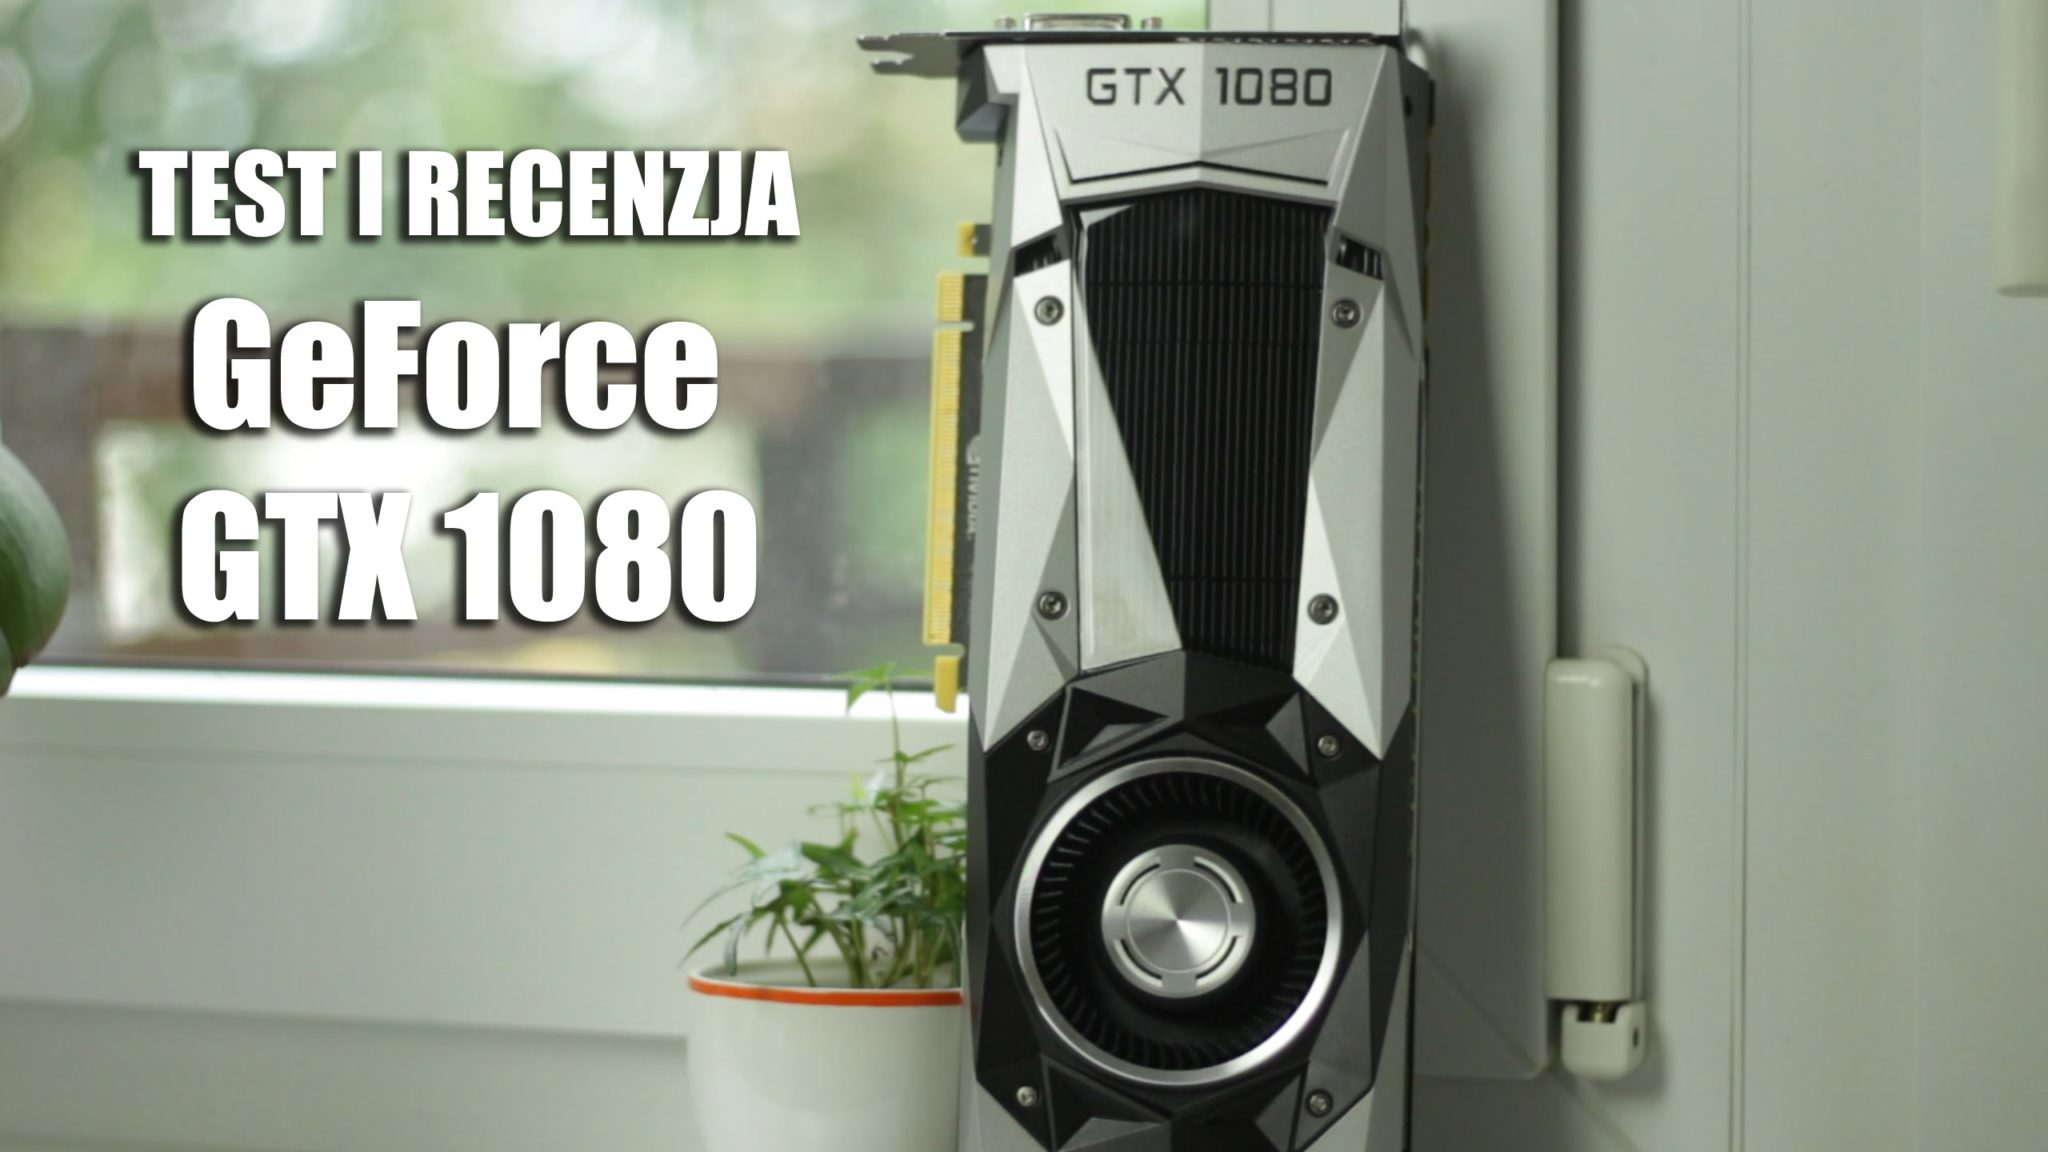 GeForce GTX 1080 Test